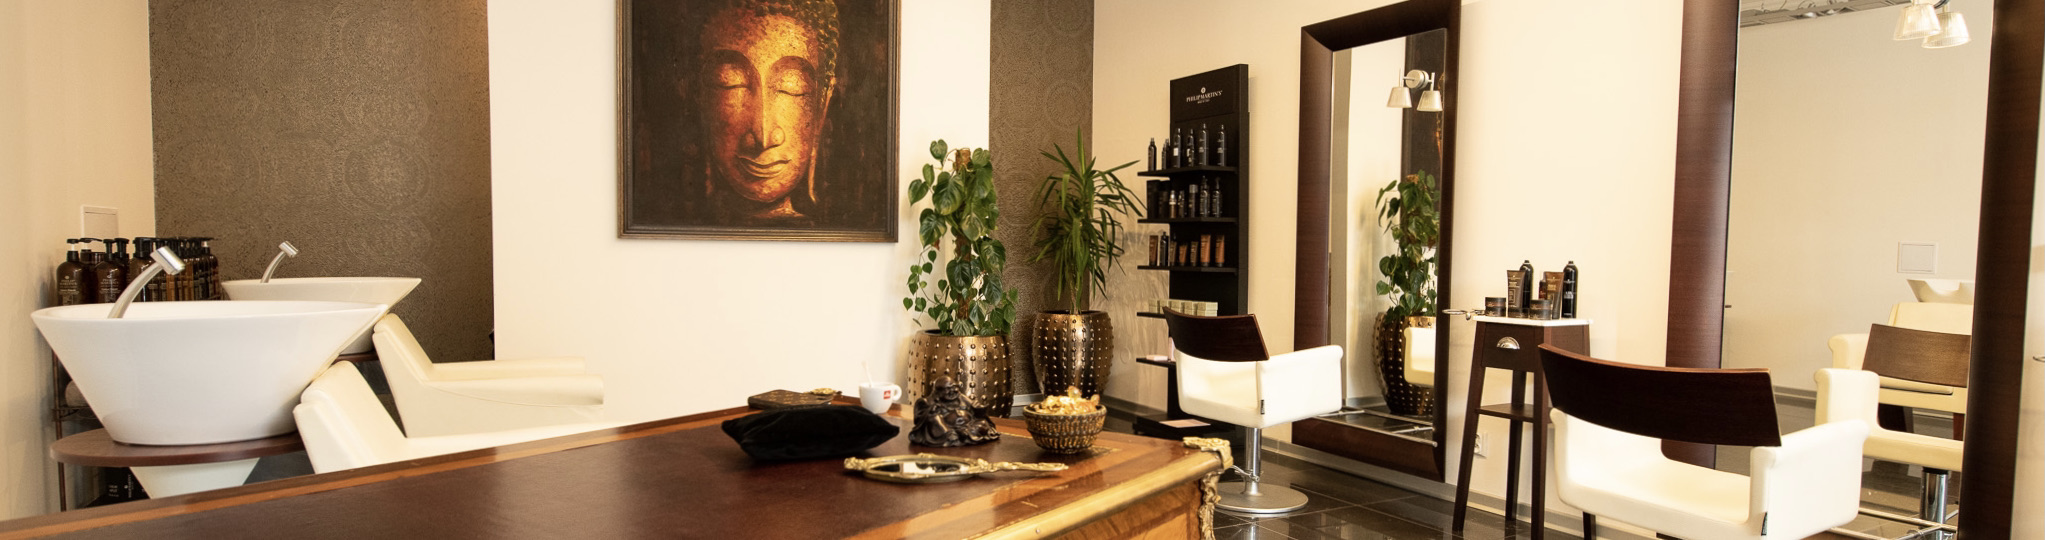 hairstudio-ercolani